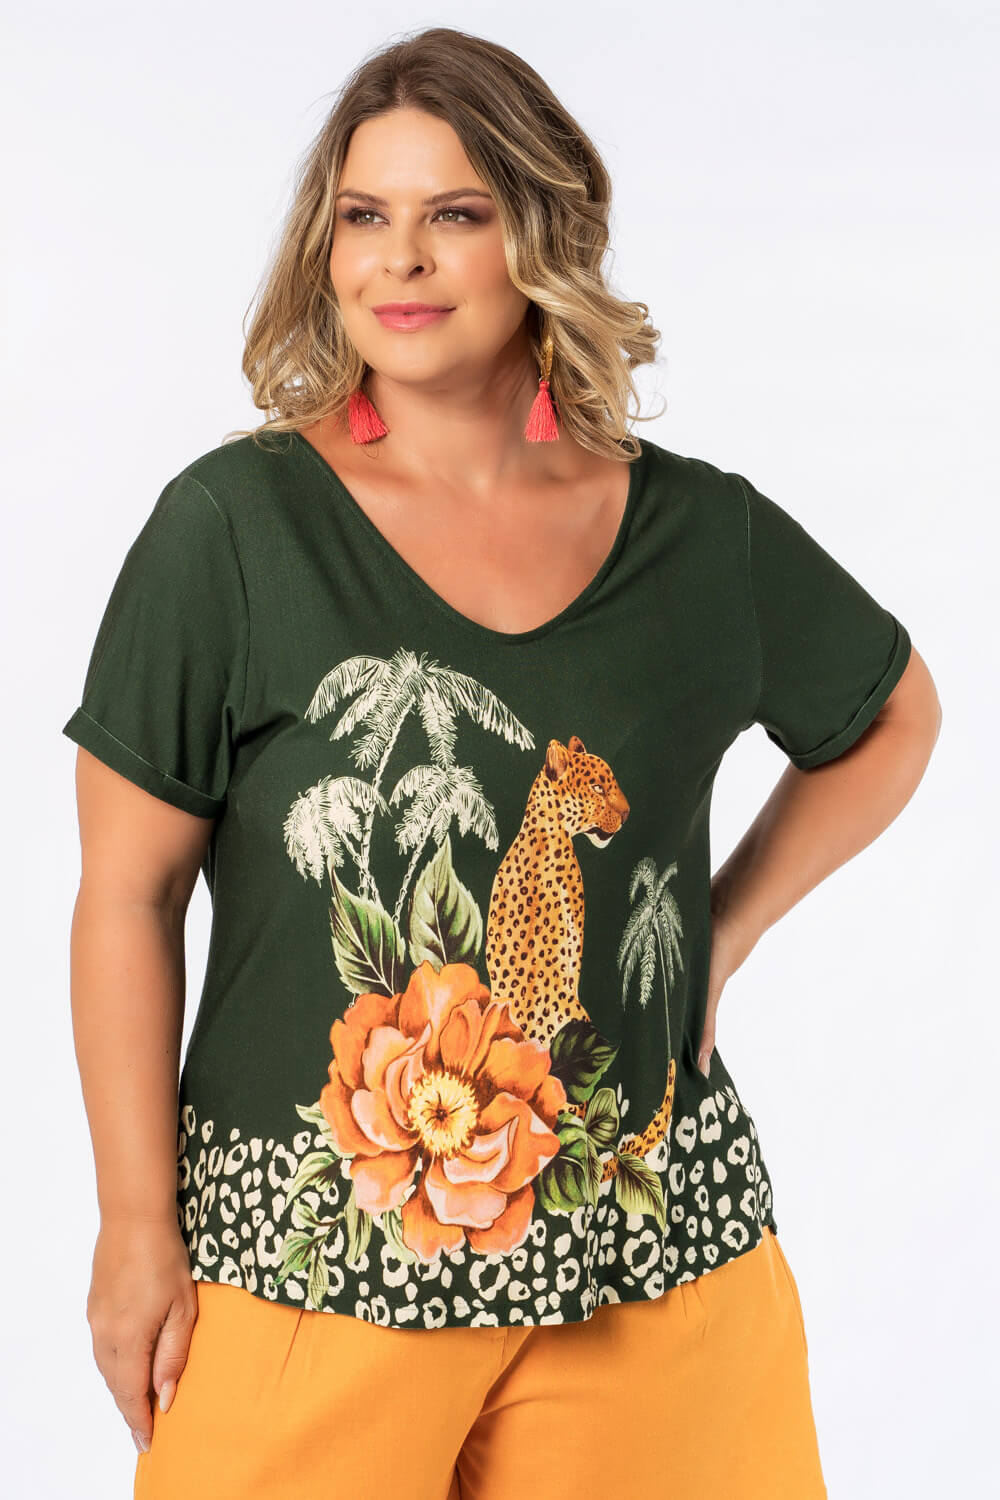 t_shirt_estampada_onca_plus_size_verde_22292_3_20201208153715